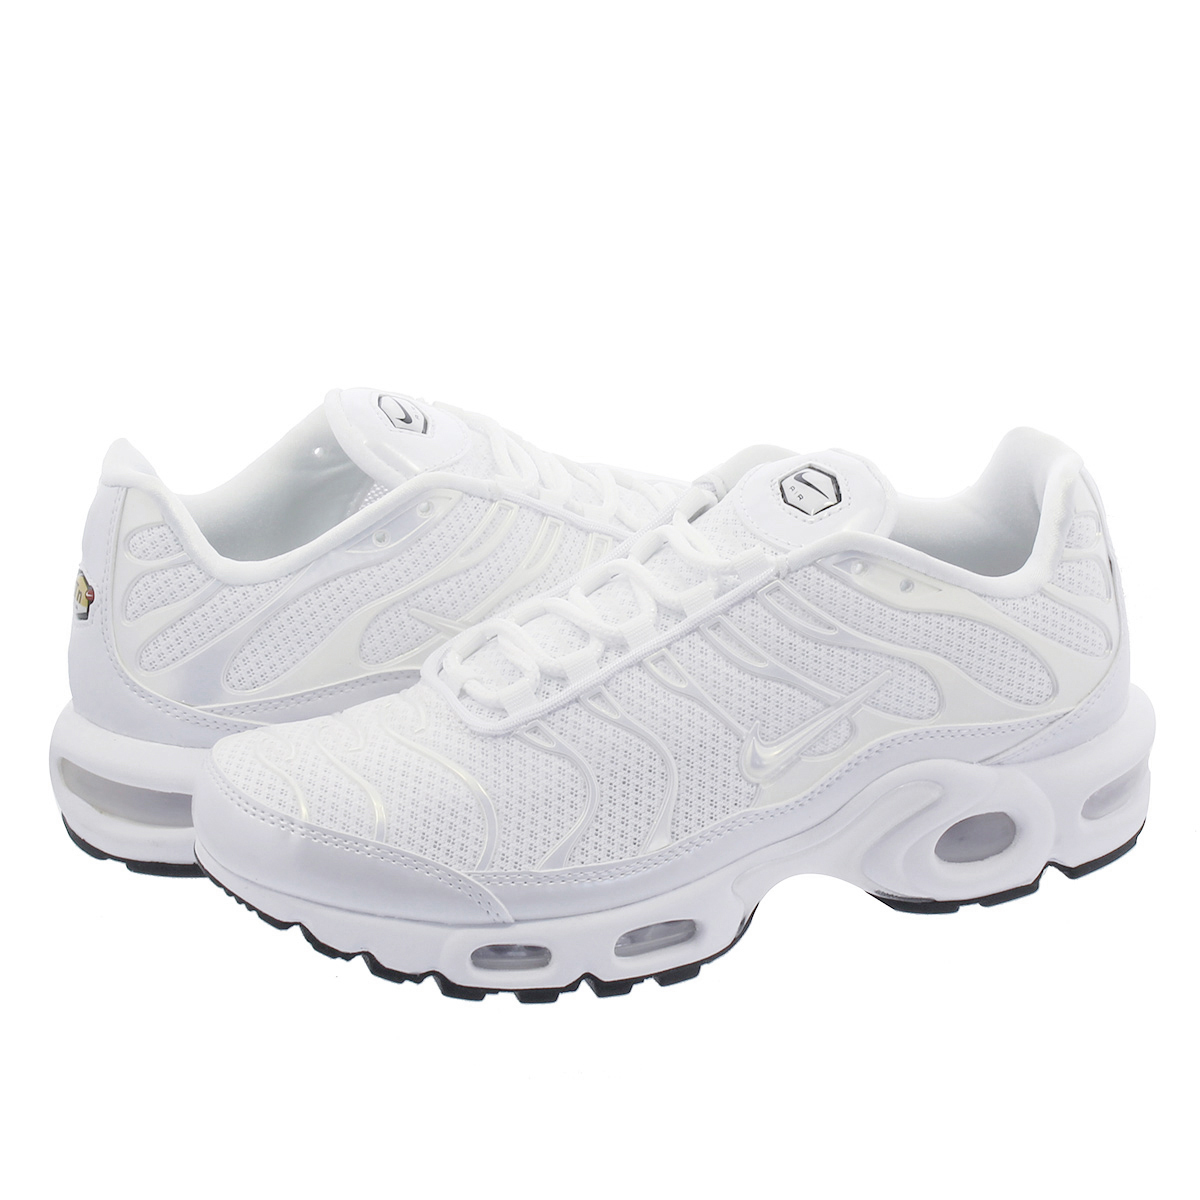 timeless design a8d5d 3400d NIKE WMNS AIR MAX PLUS PREMIUM Nike women Air Max plus premium  WHITE/WHITE/WHITE/BLACK 848,891-100